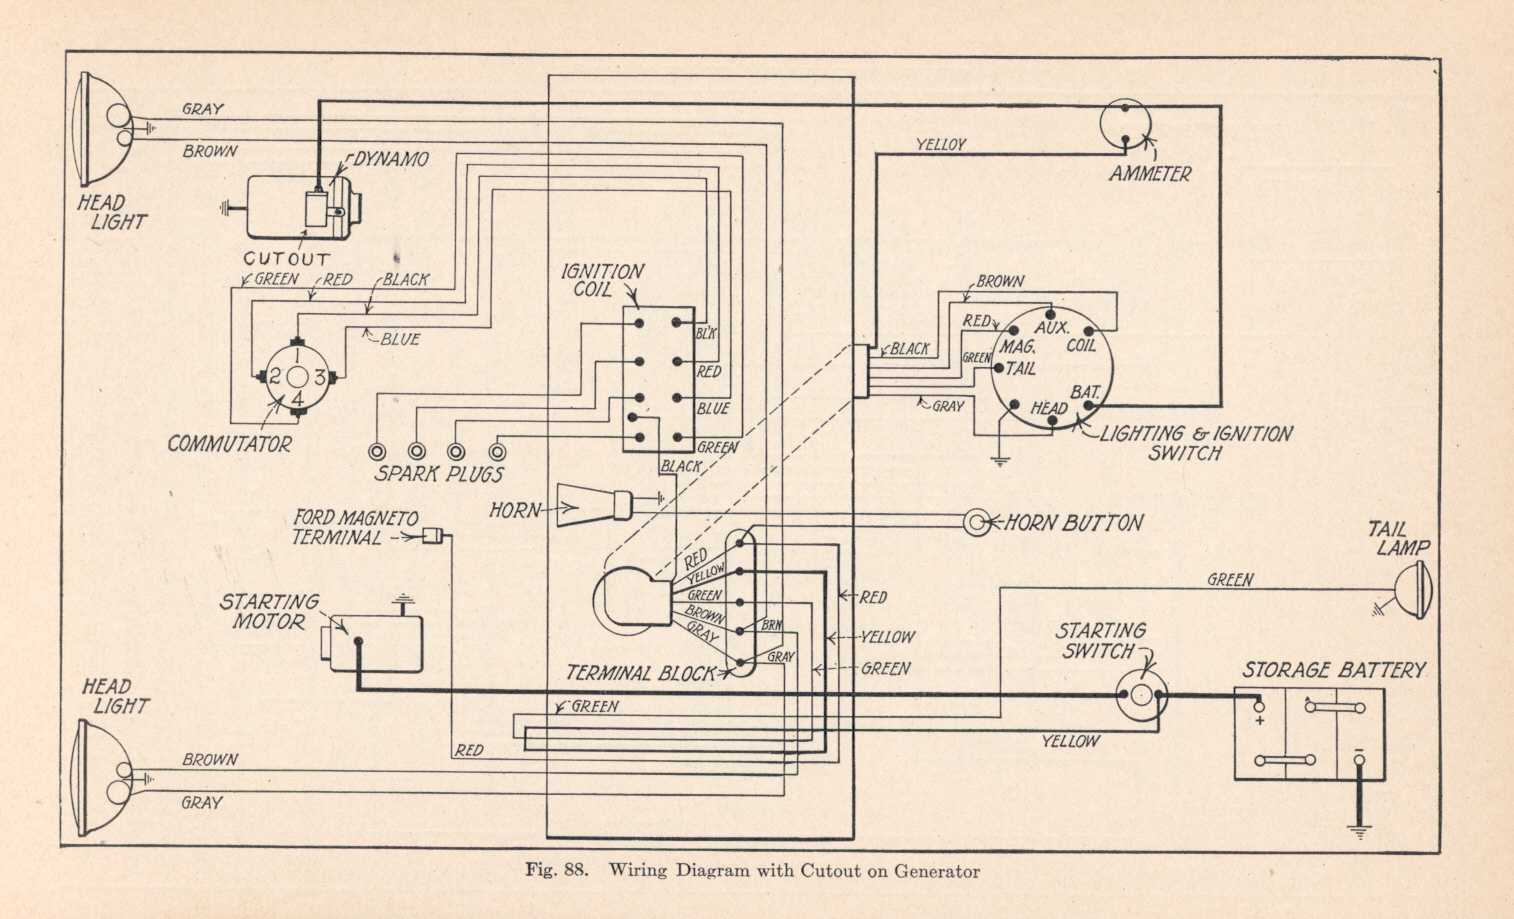 model t wiring diagram model wiring diagrams online model t ford forum amp meter wiring help needed